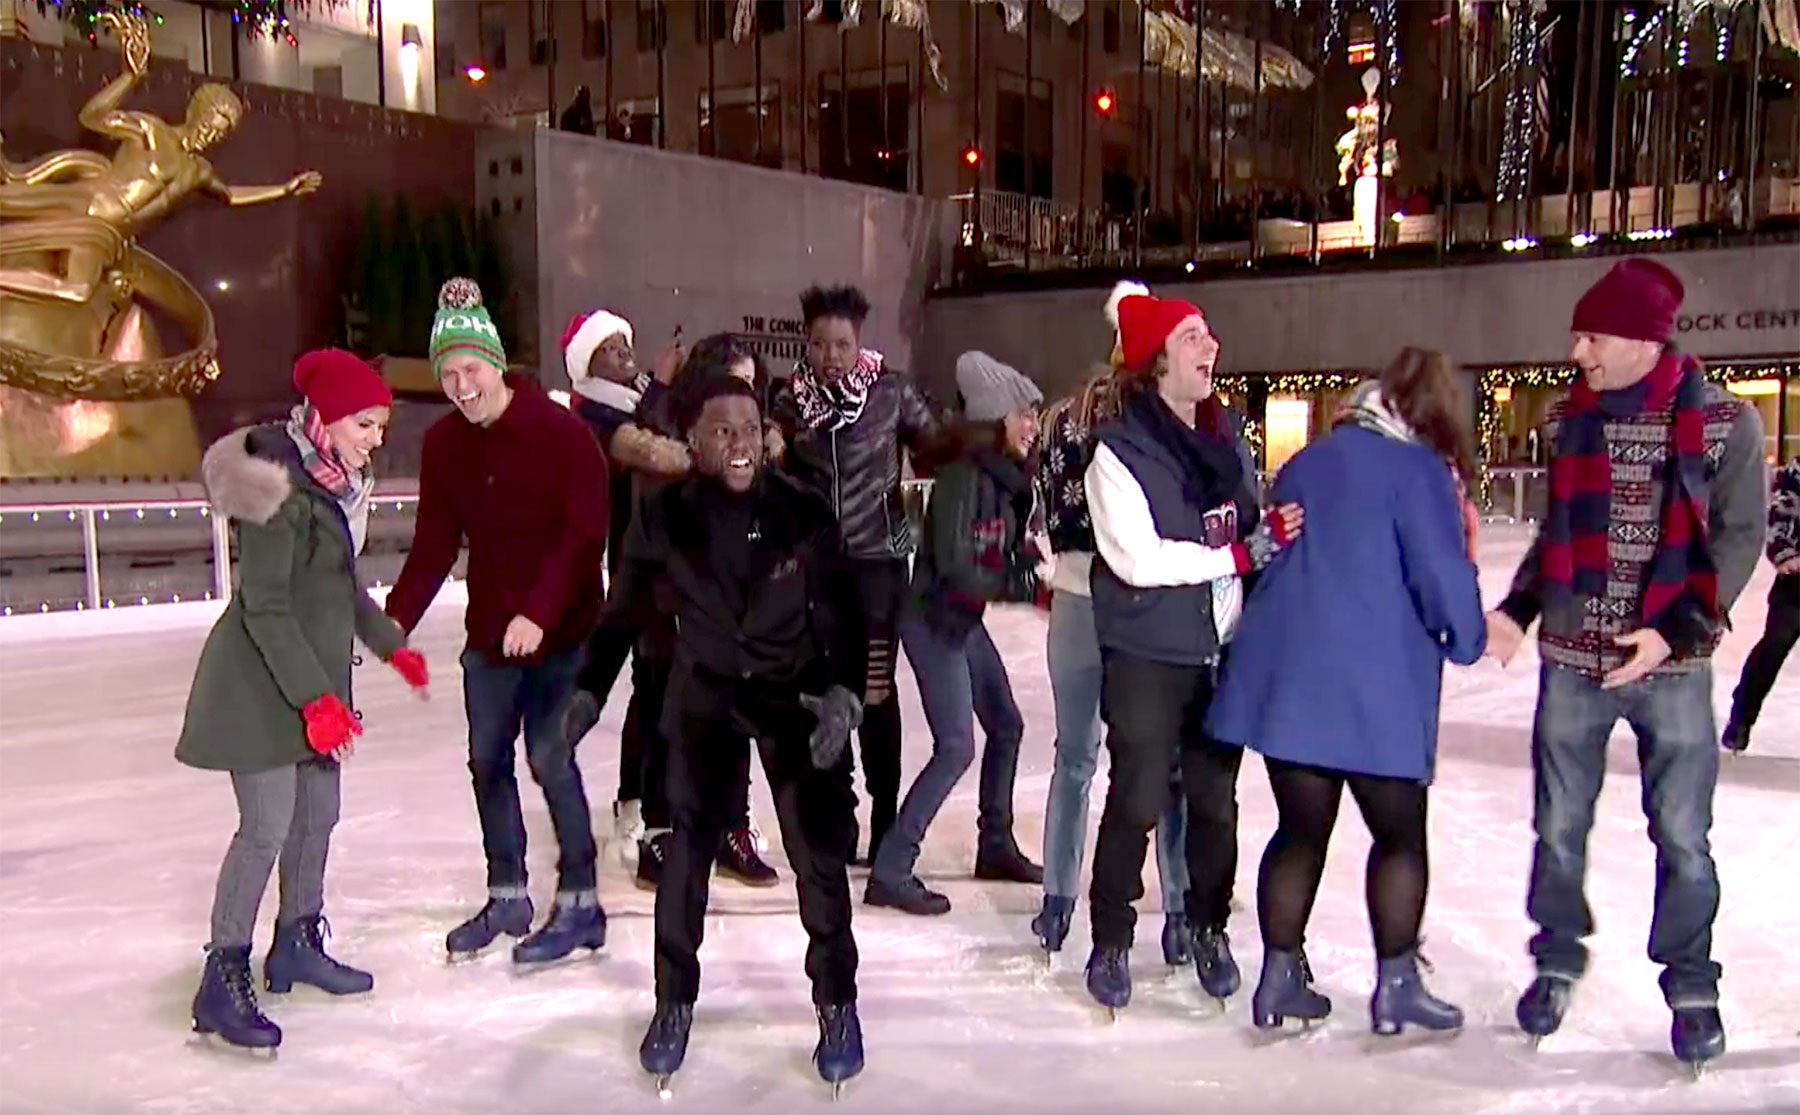 Scarlett Johansson and Colin Jost Relationship Timeline Saturday Night Live Ice Skating - The couple showed some PDA on the ice rink during the closing credits of SNL .